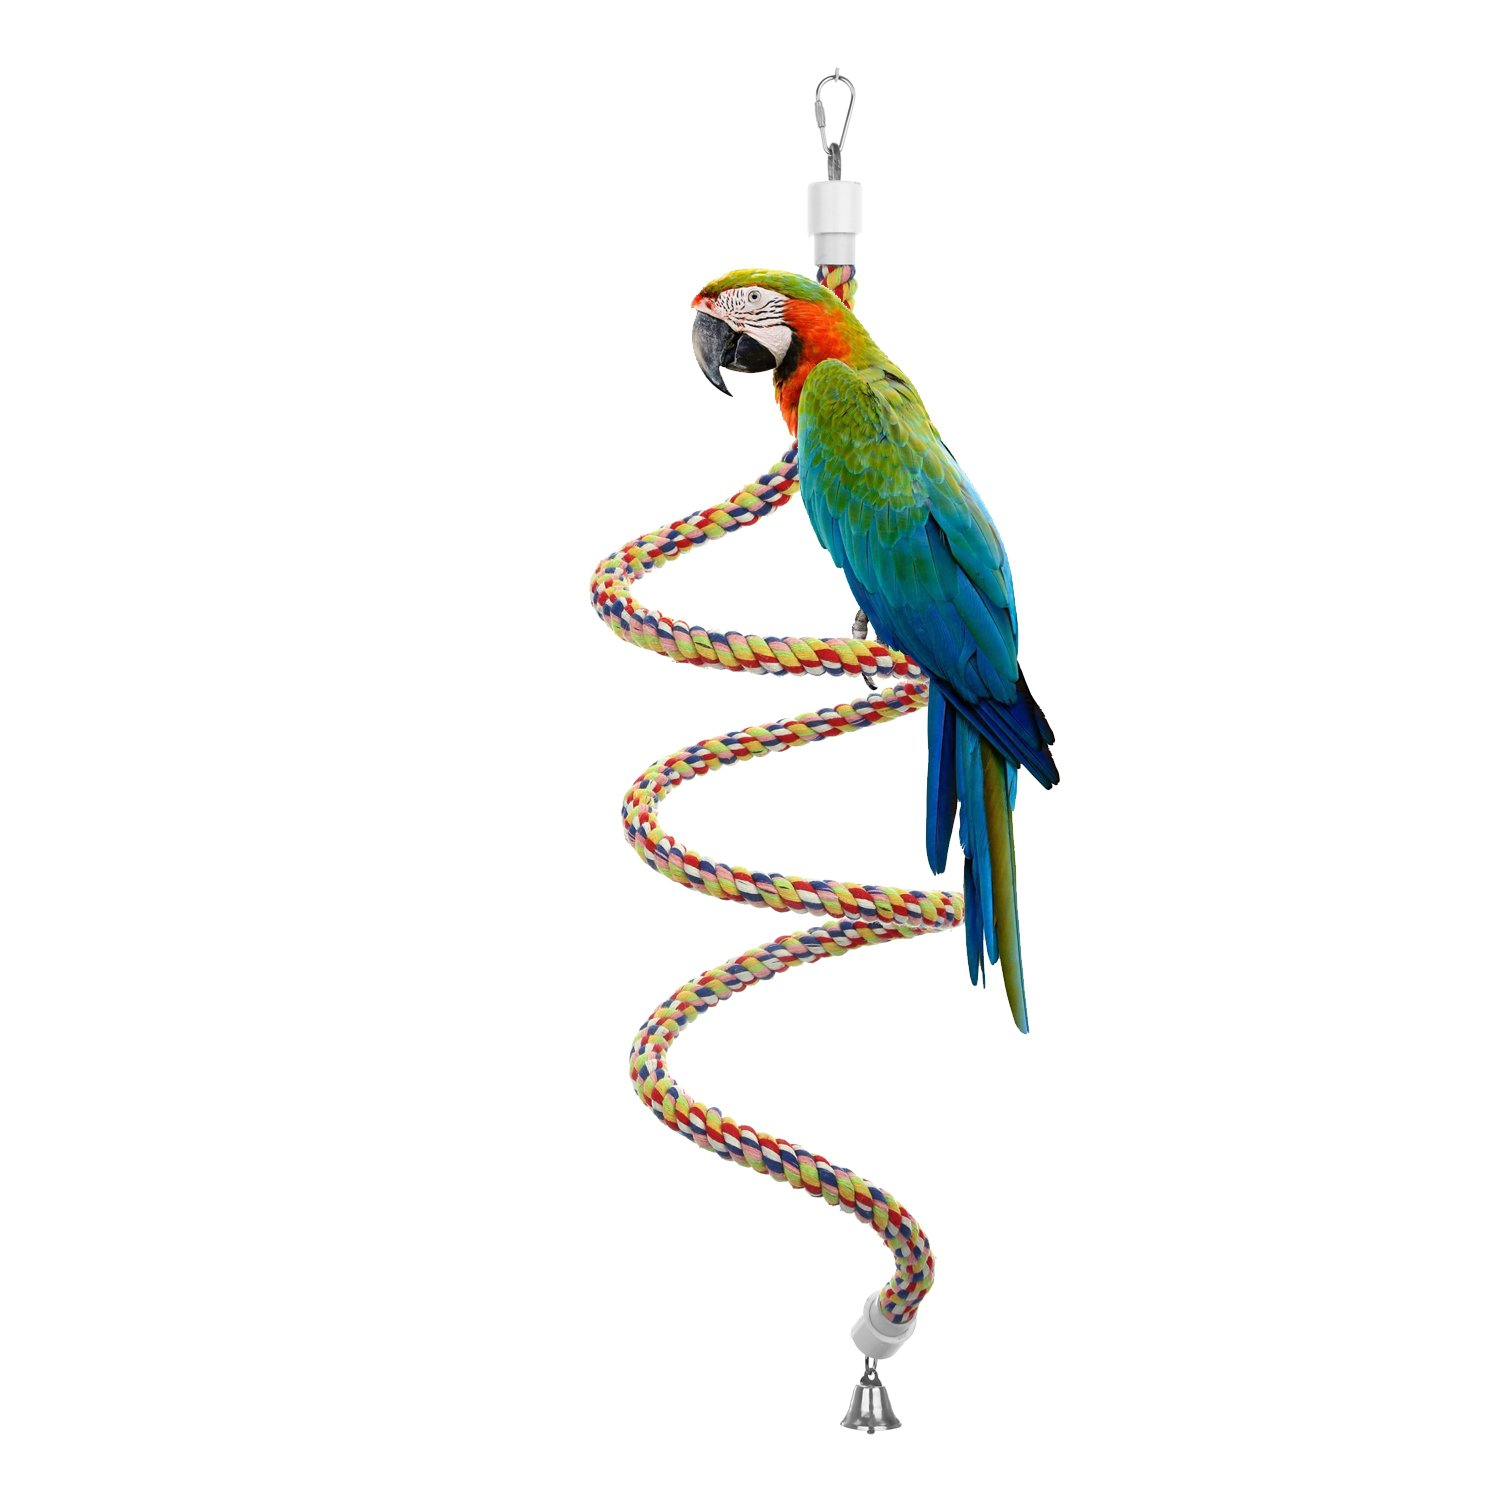 etrech Knots Block Chewing Parrot Toy, Climbing Hanging Toy for Birds